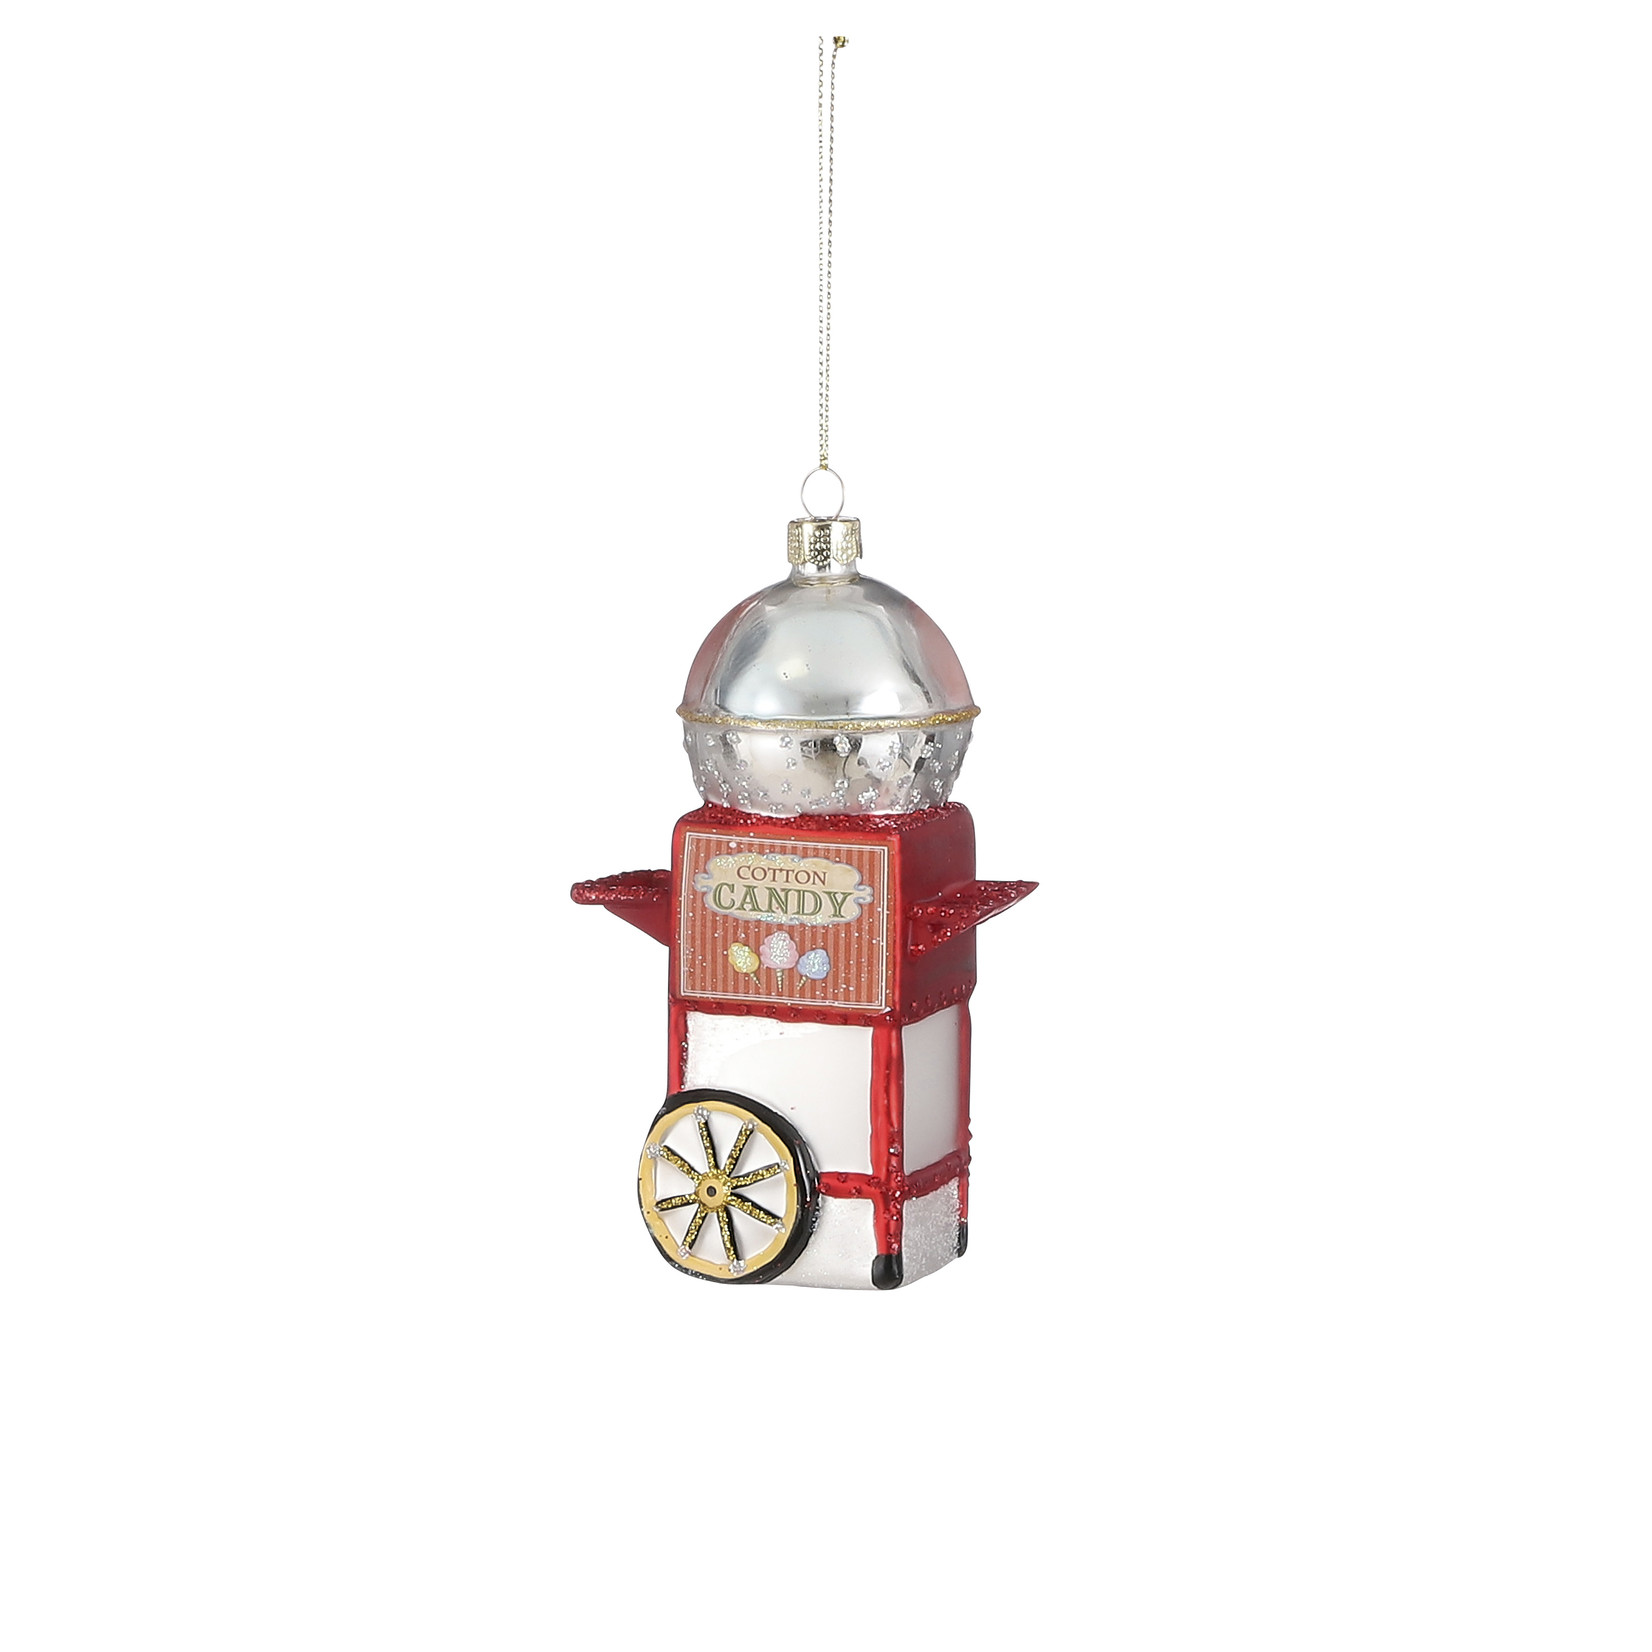 House of Seasons Ornament candy red